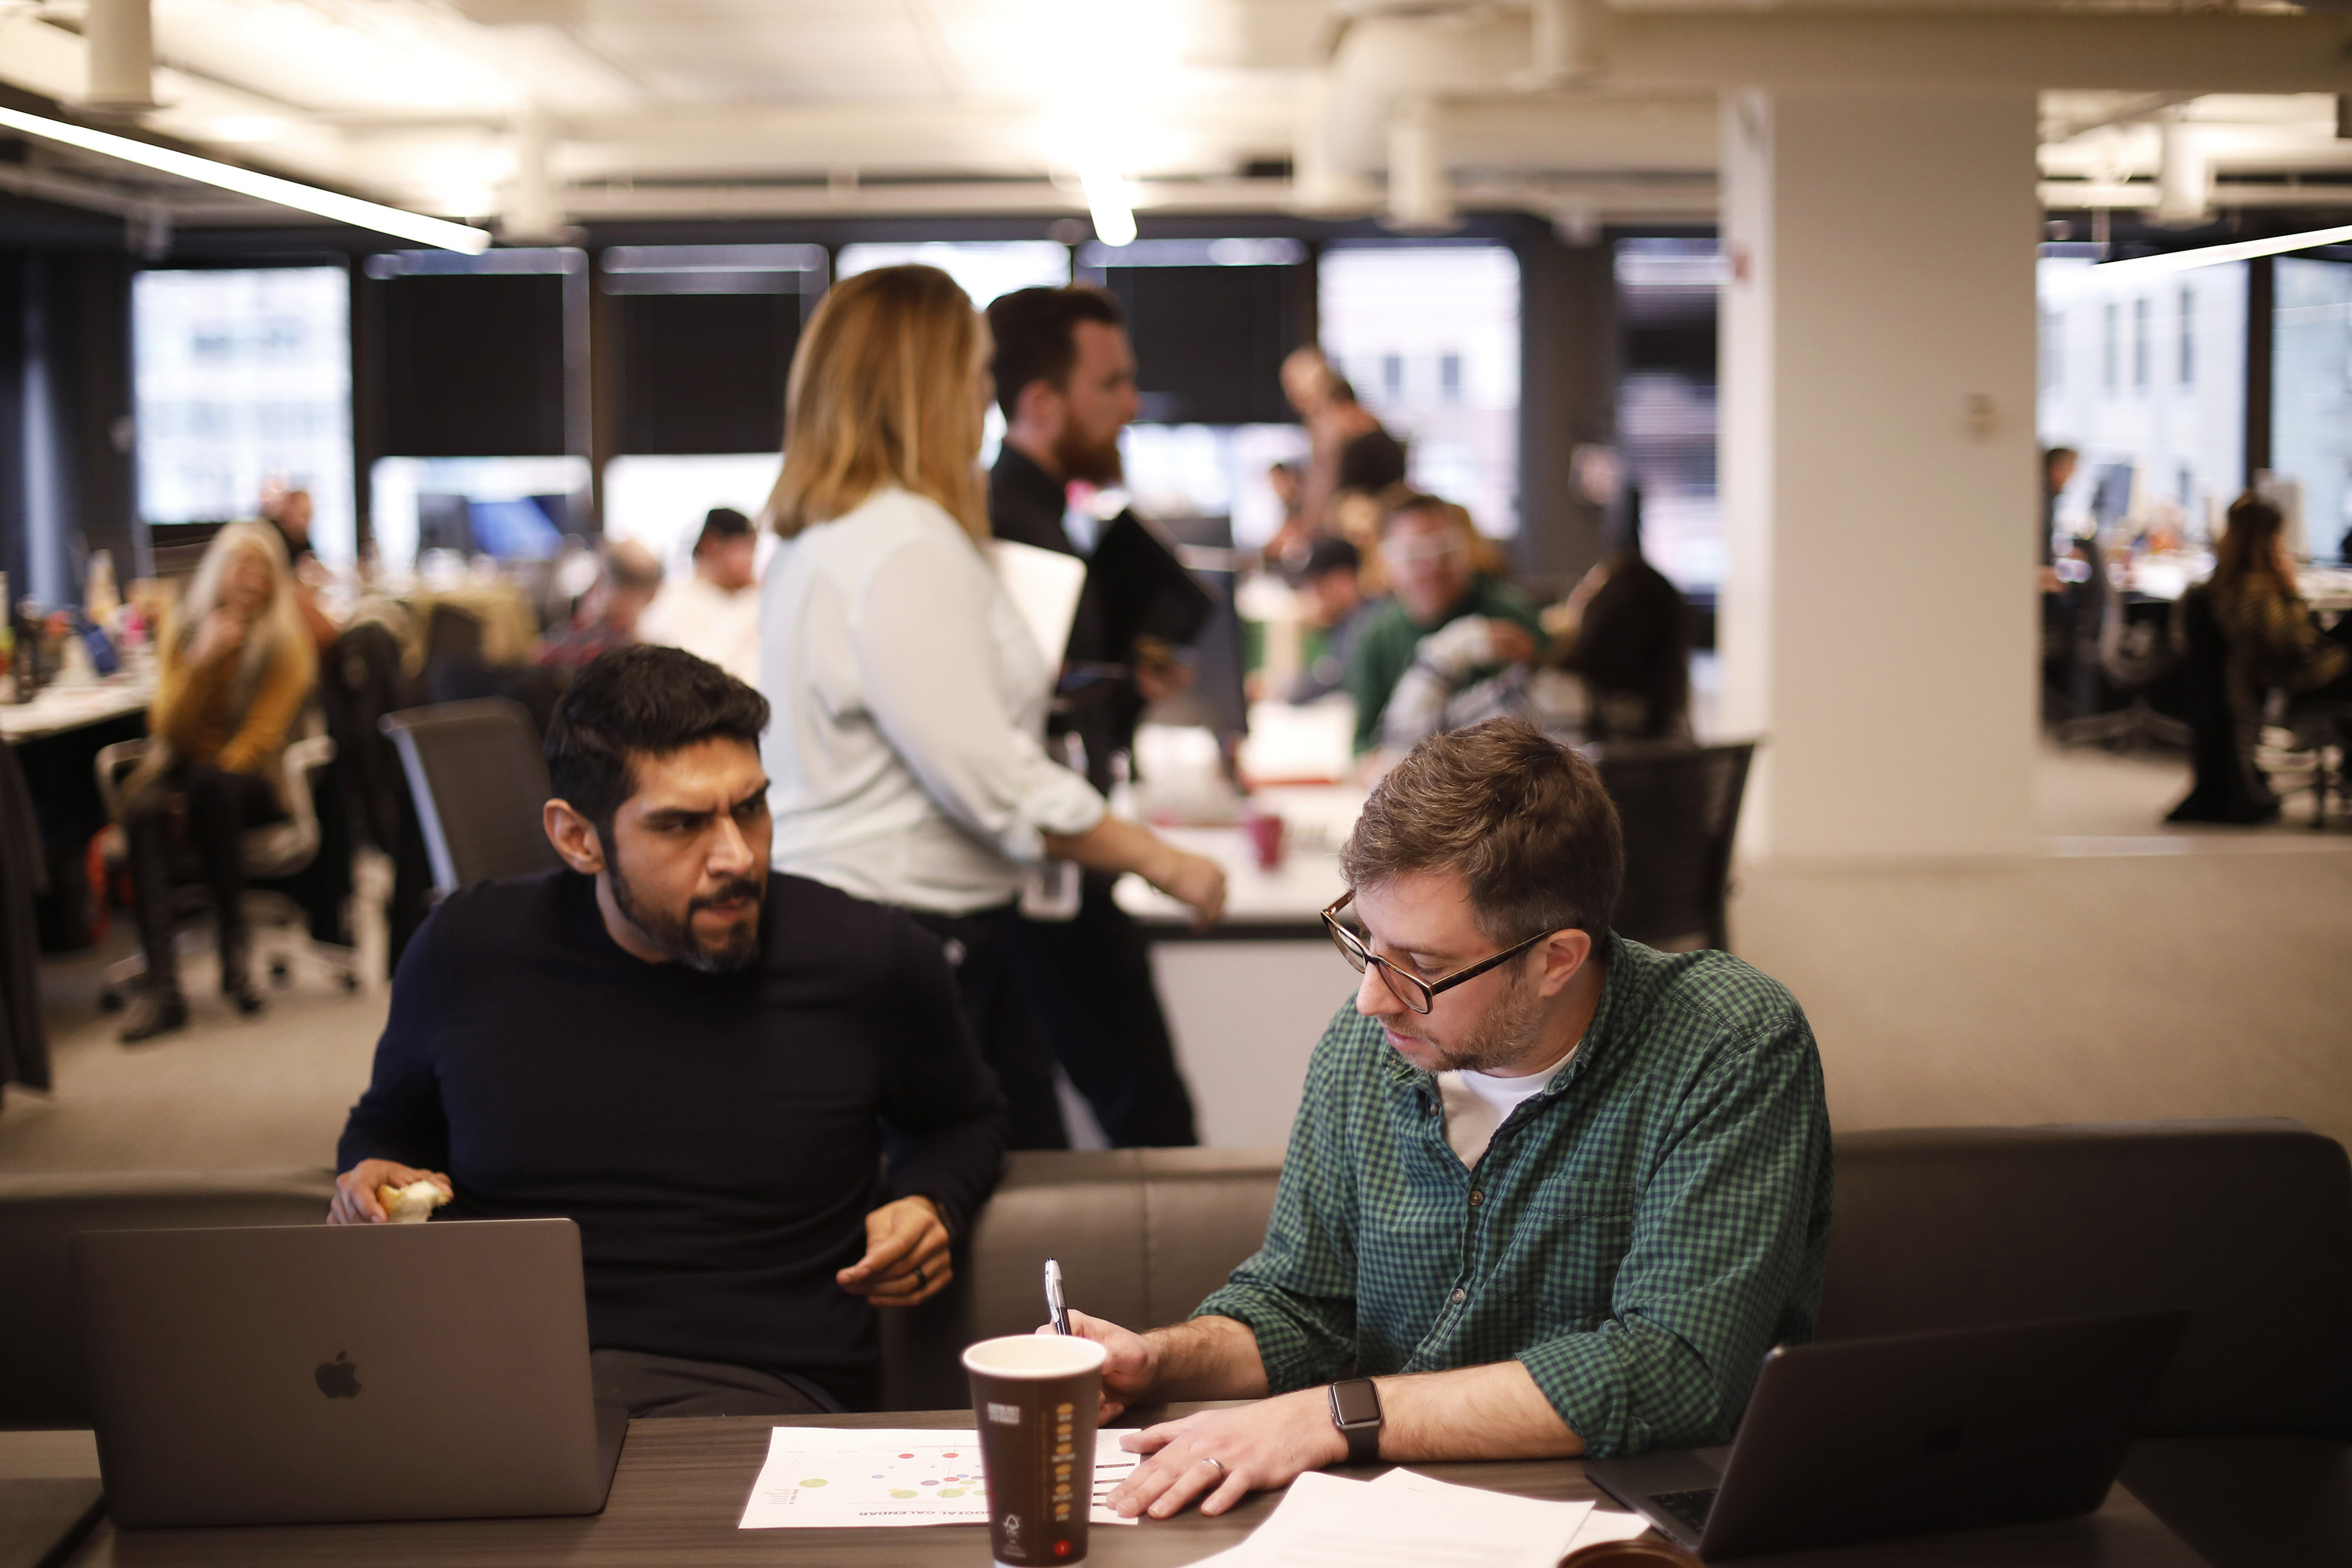 Vic Sanchez, left, and Jon Morgan, both creative directors, work on concepting at an open table space at We Are Unlimited, McDonald's new standalone advertising agency, on March 9, 2017 in Chicago. (Jose M. Osorio/Chicago Tribune/TNS)